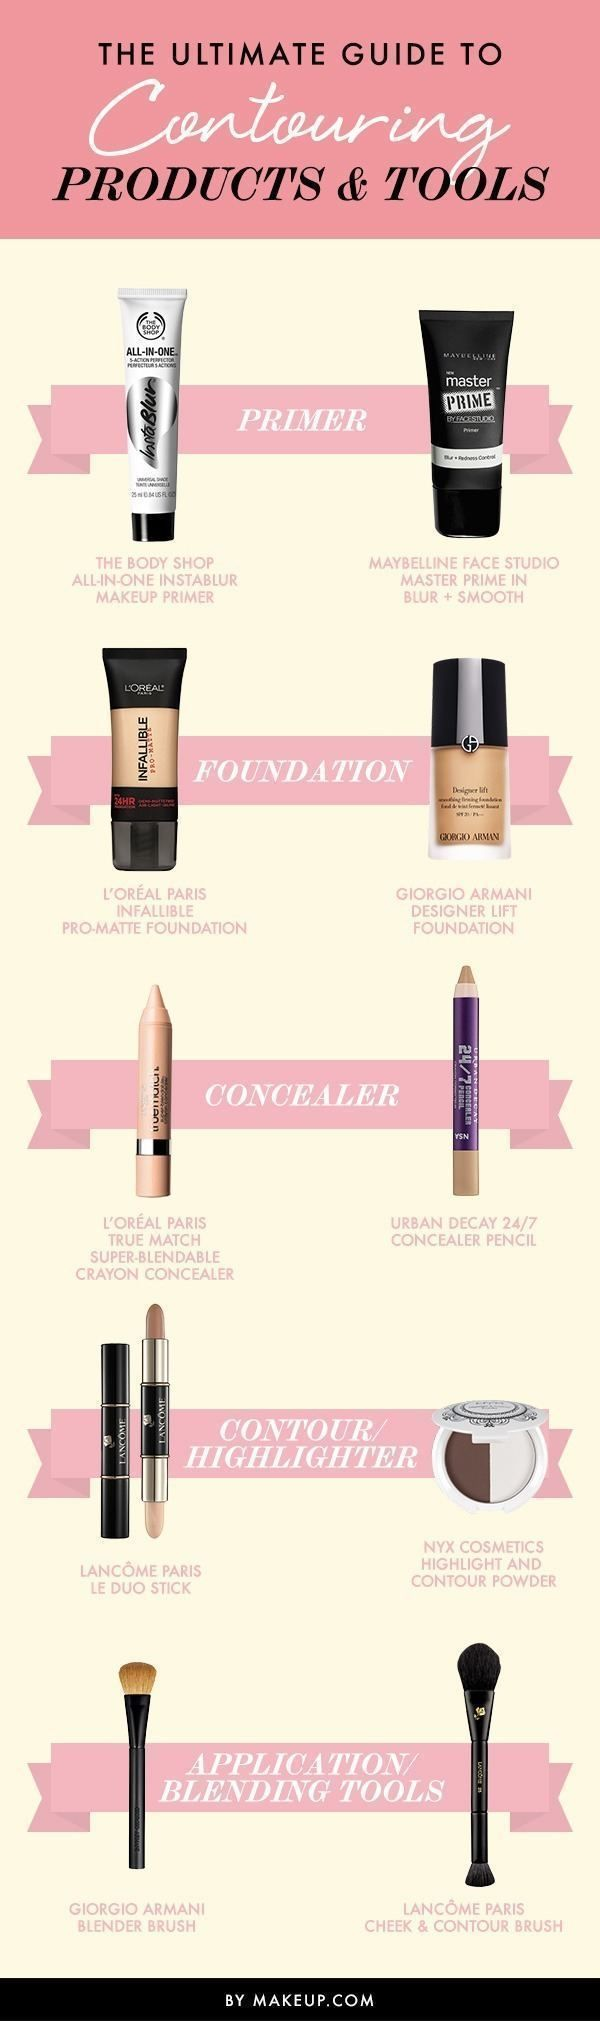 Contouring Products And Tools